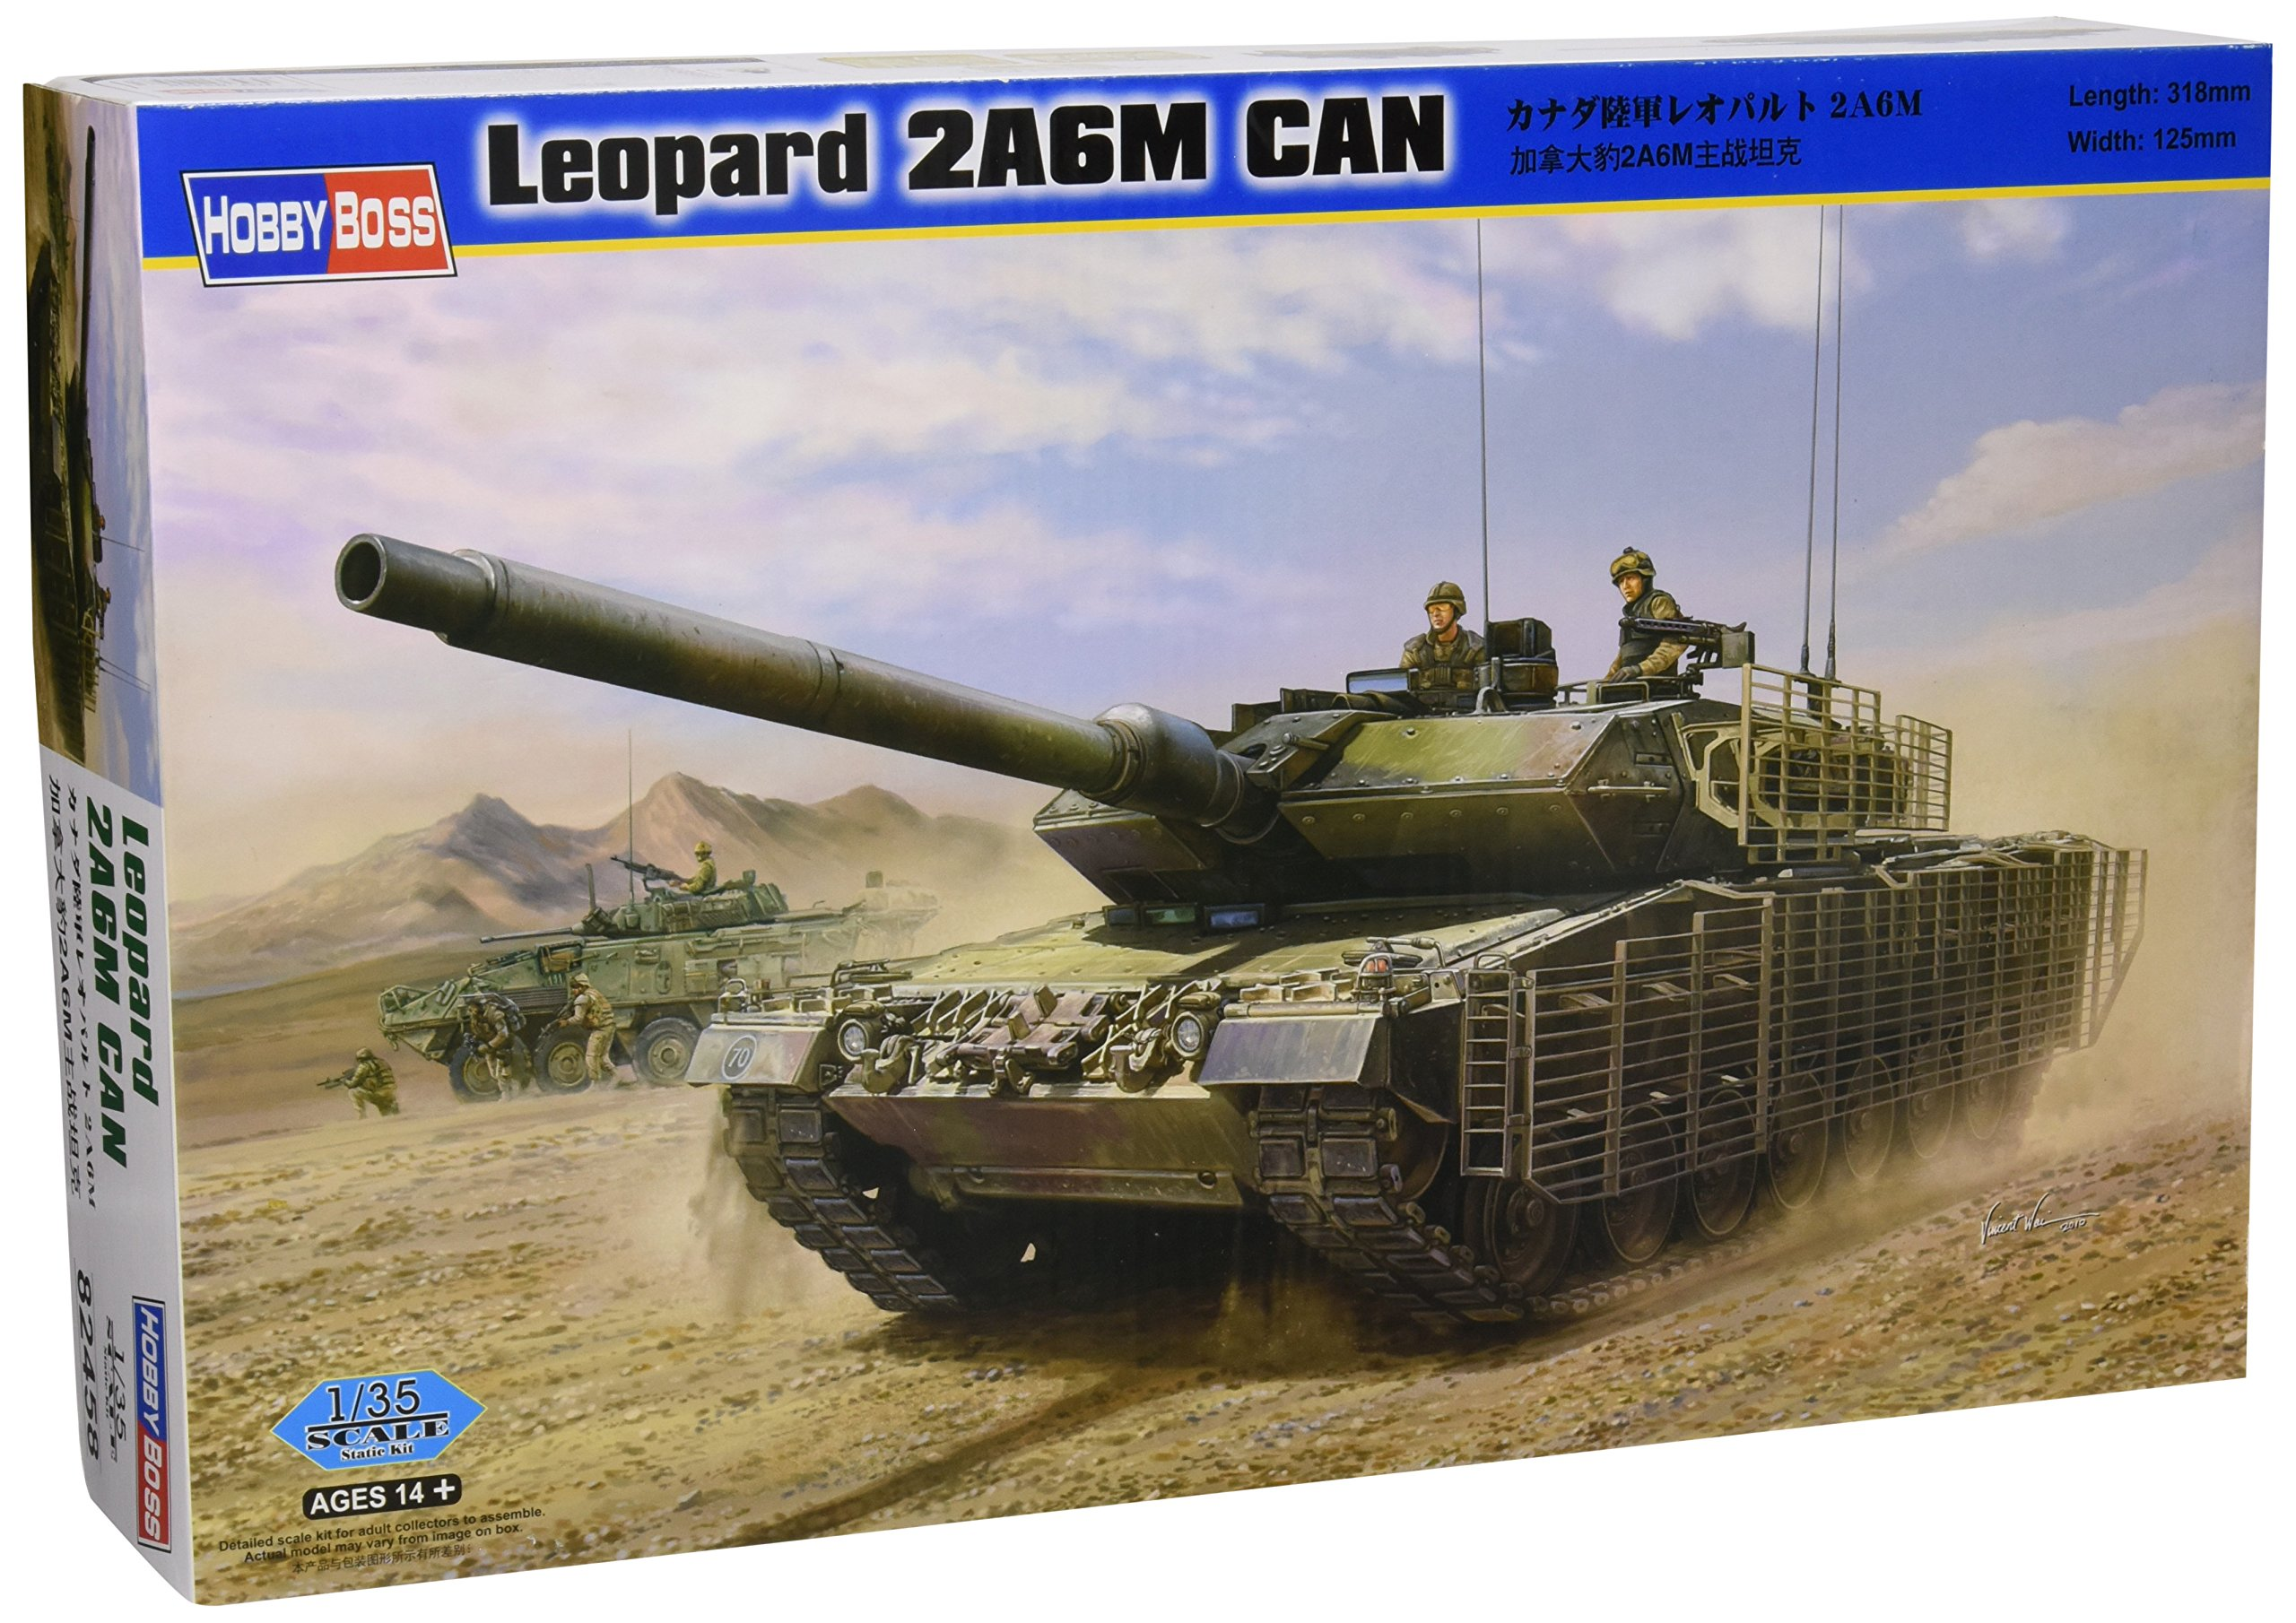 Hobby Boss Leopard 2A6M Canada Vehicle Model Building Kit